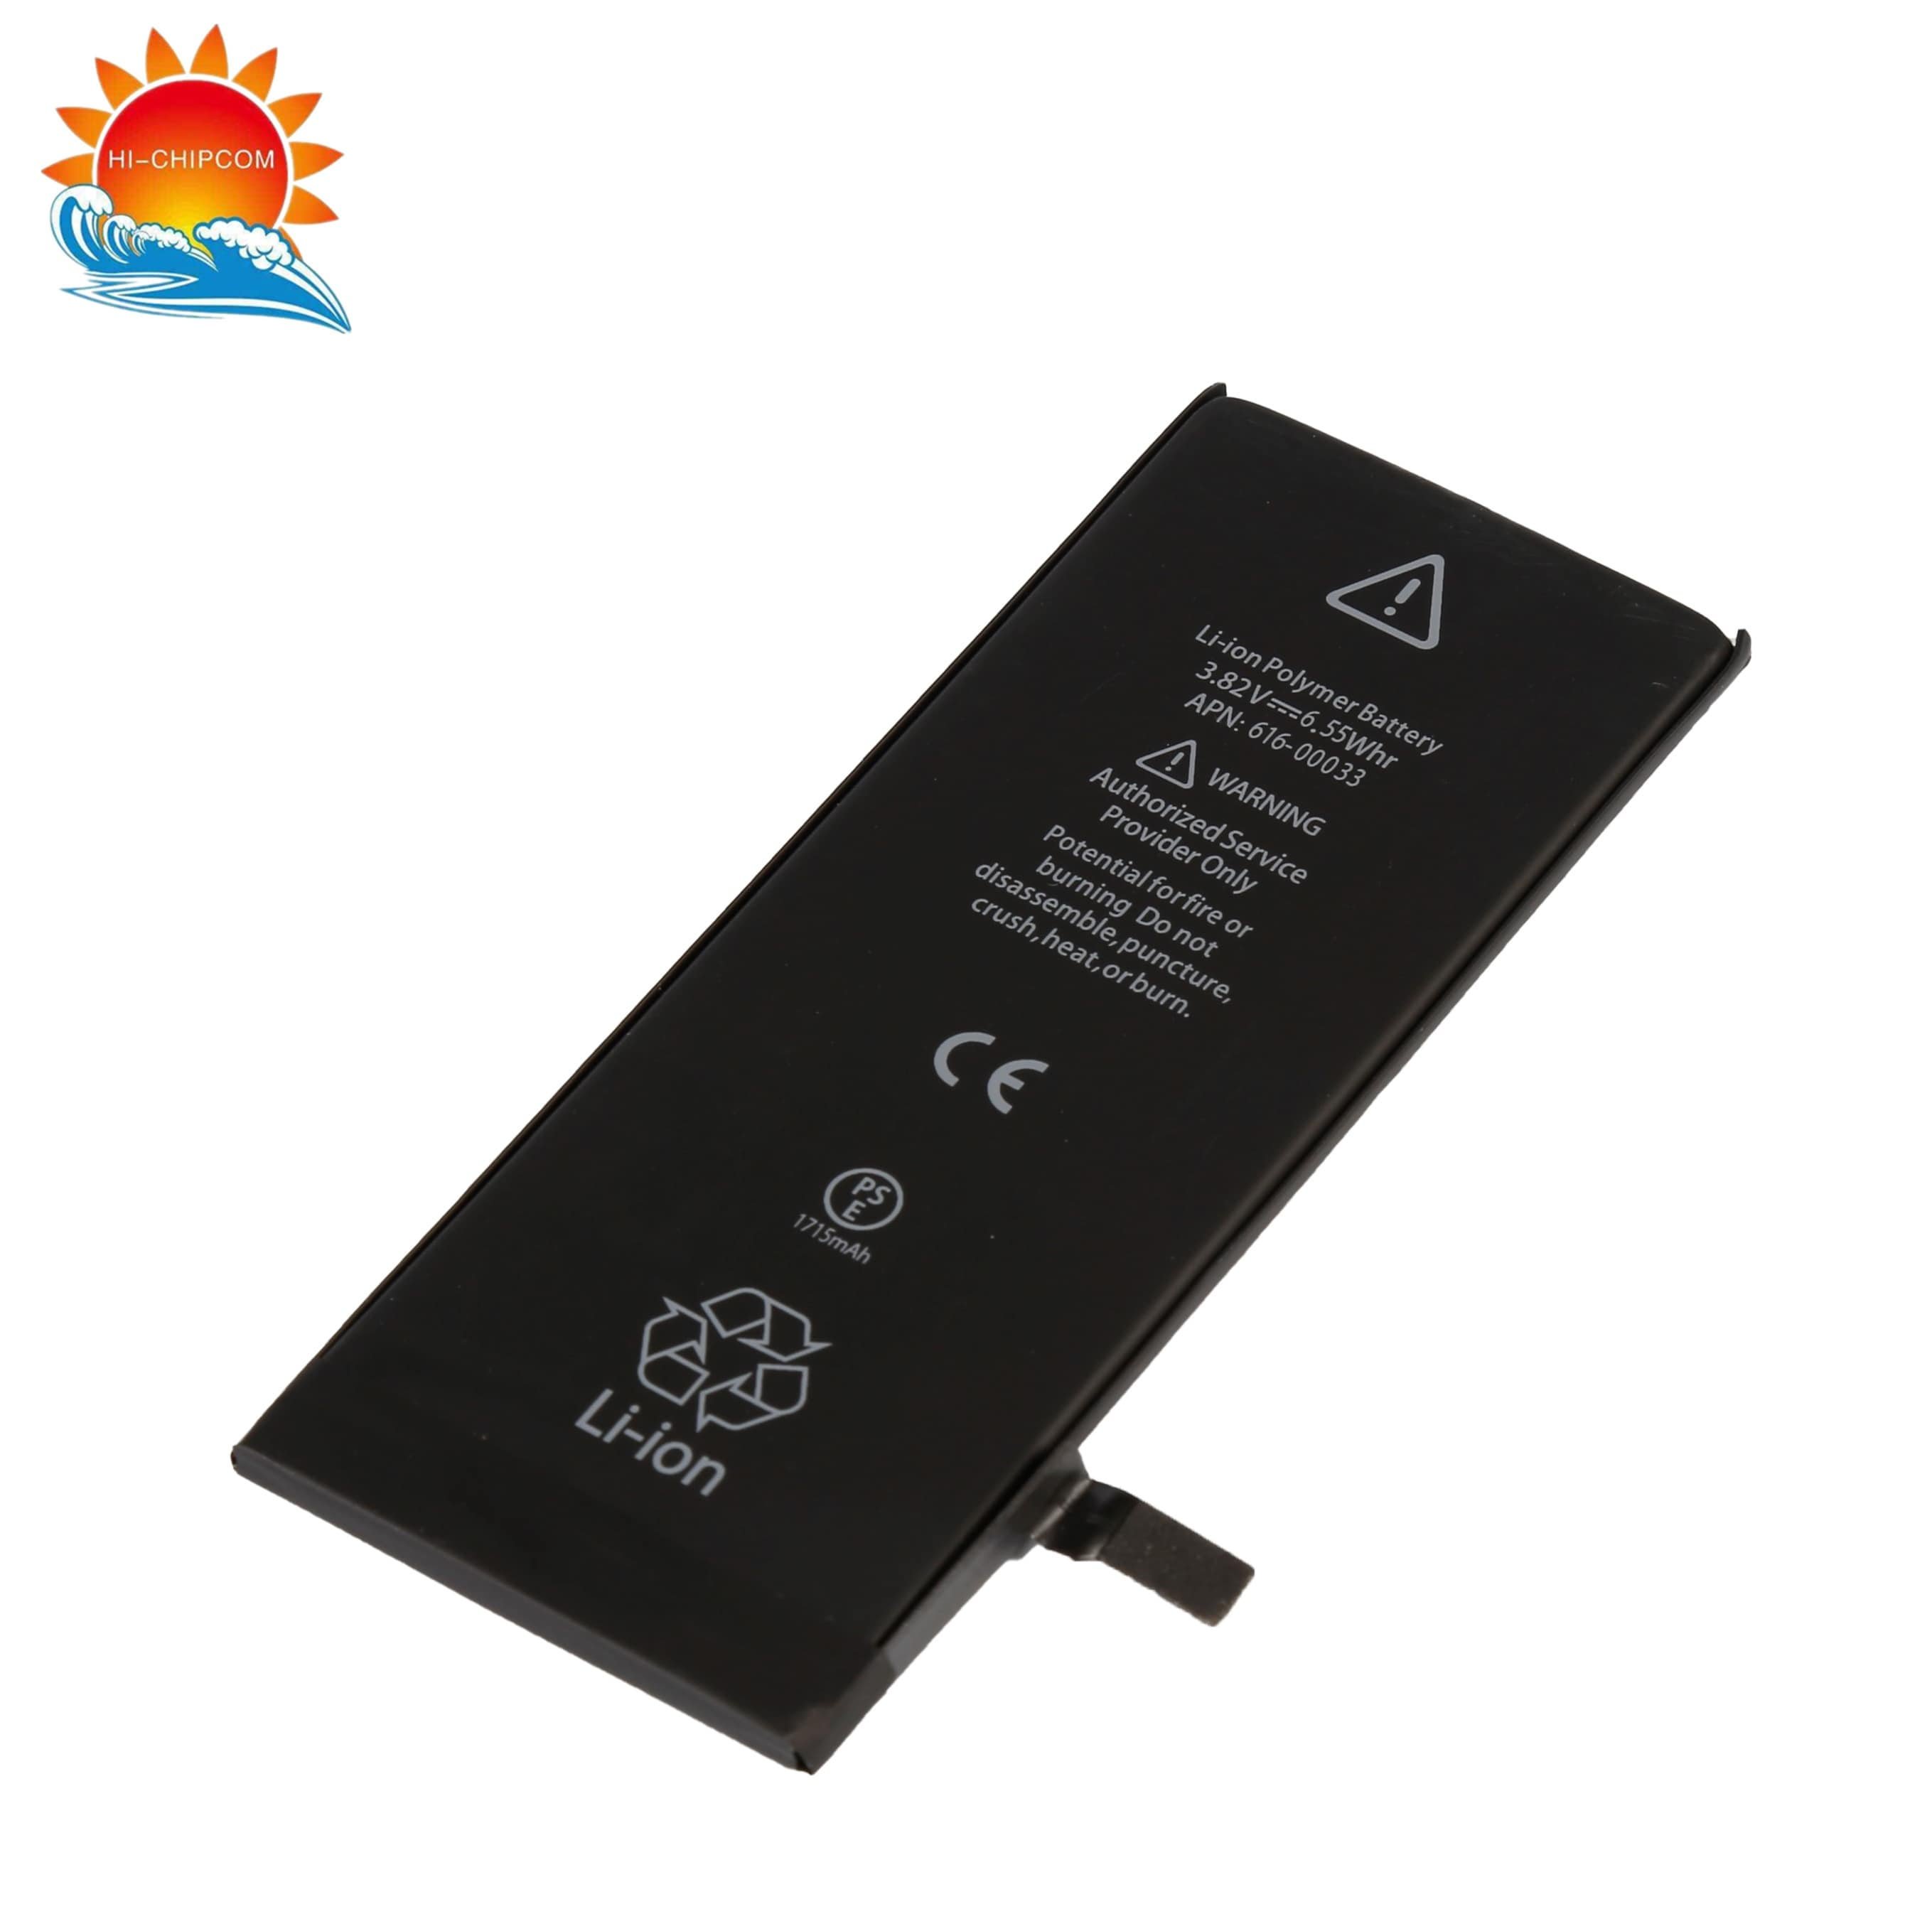 iPhone 6s OEM Battery